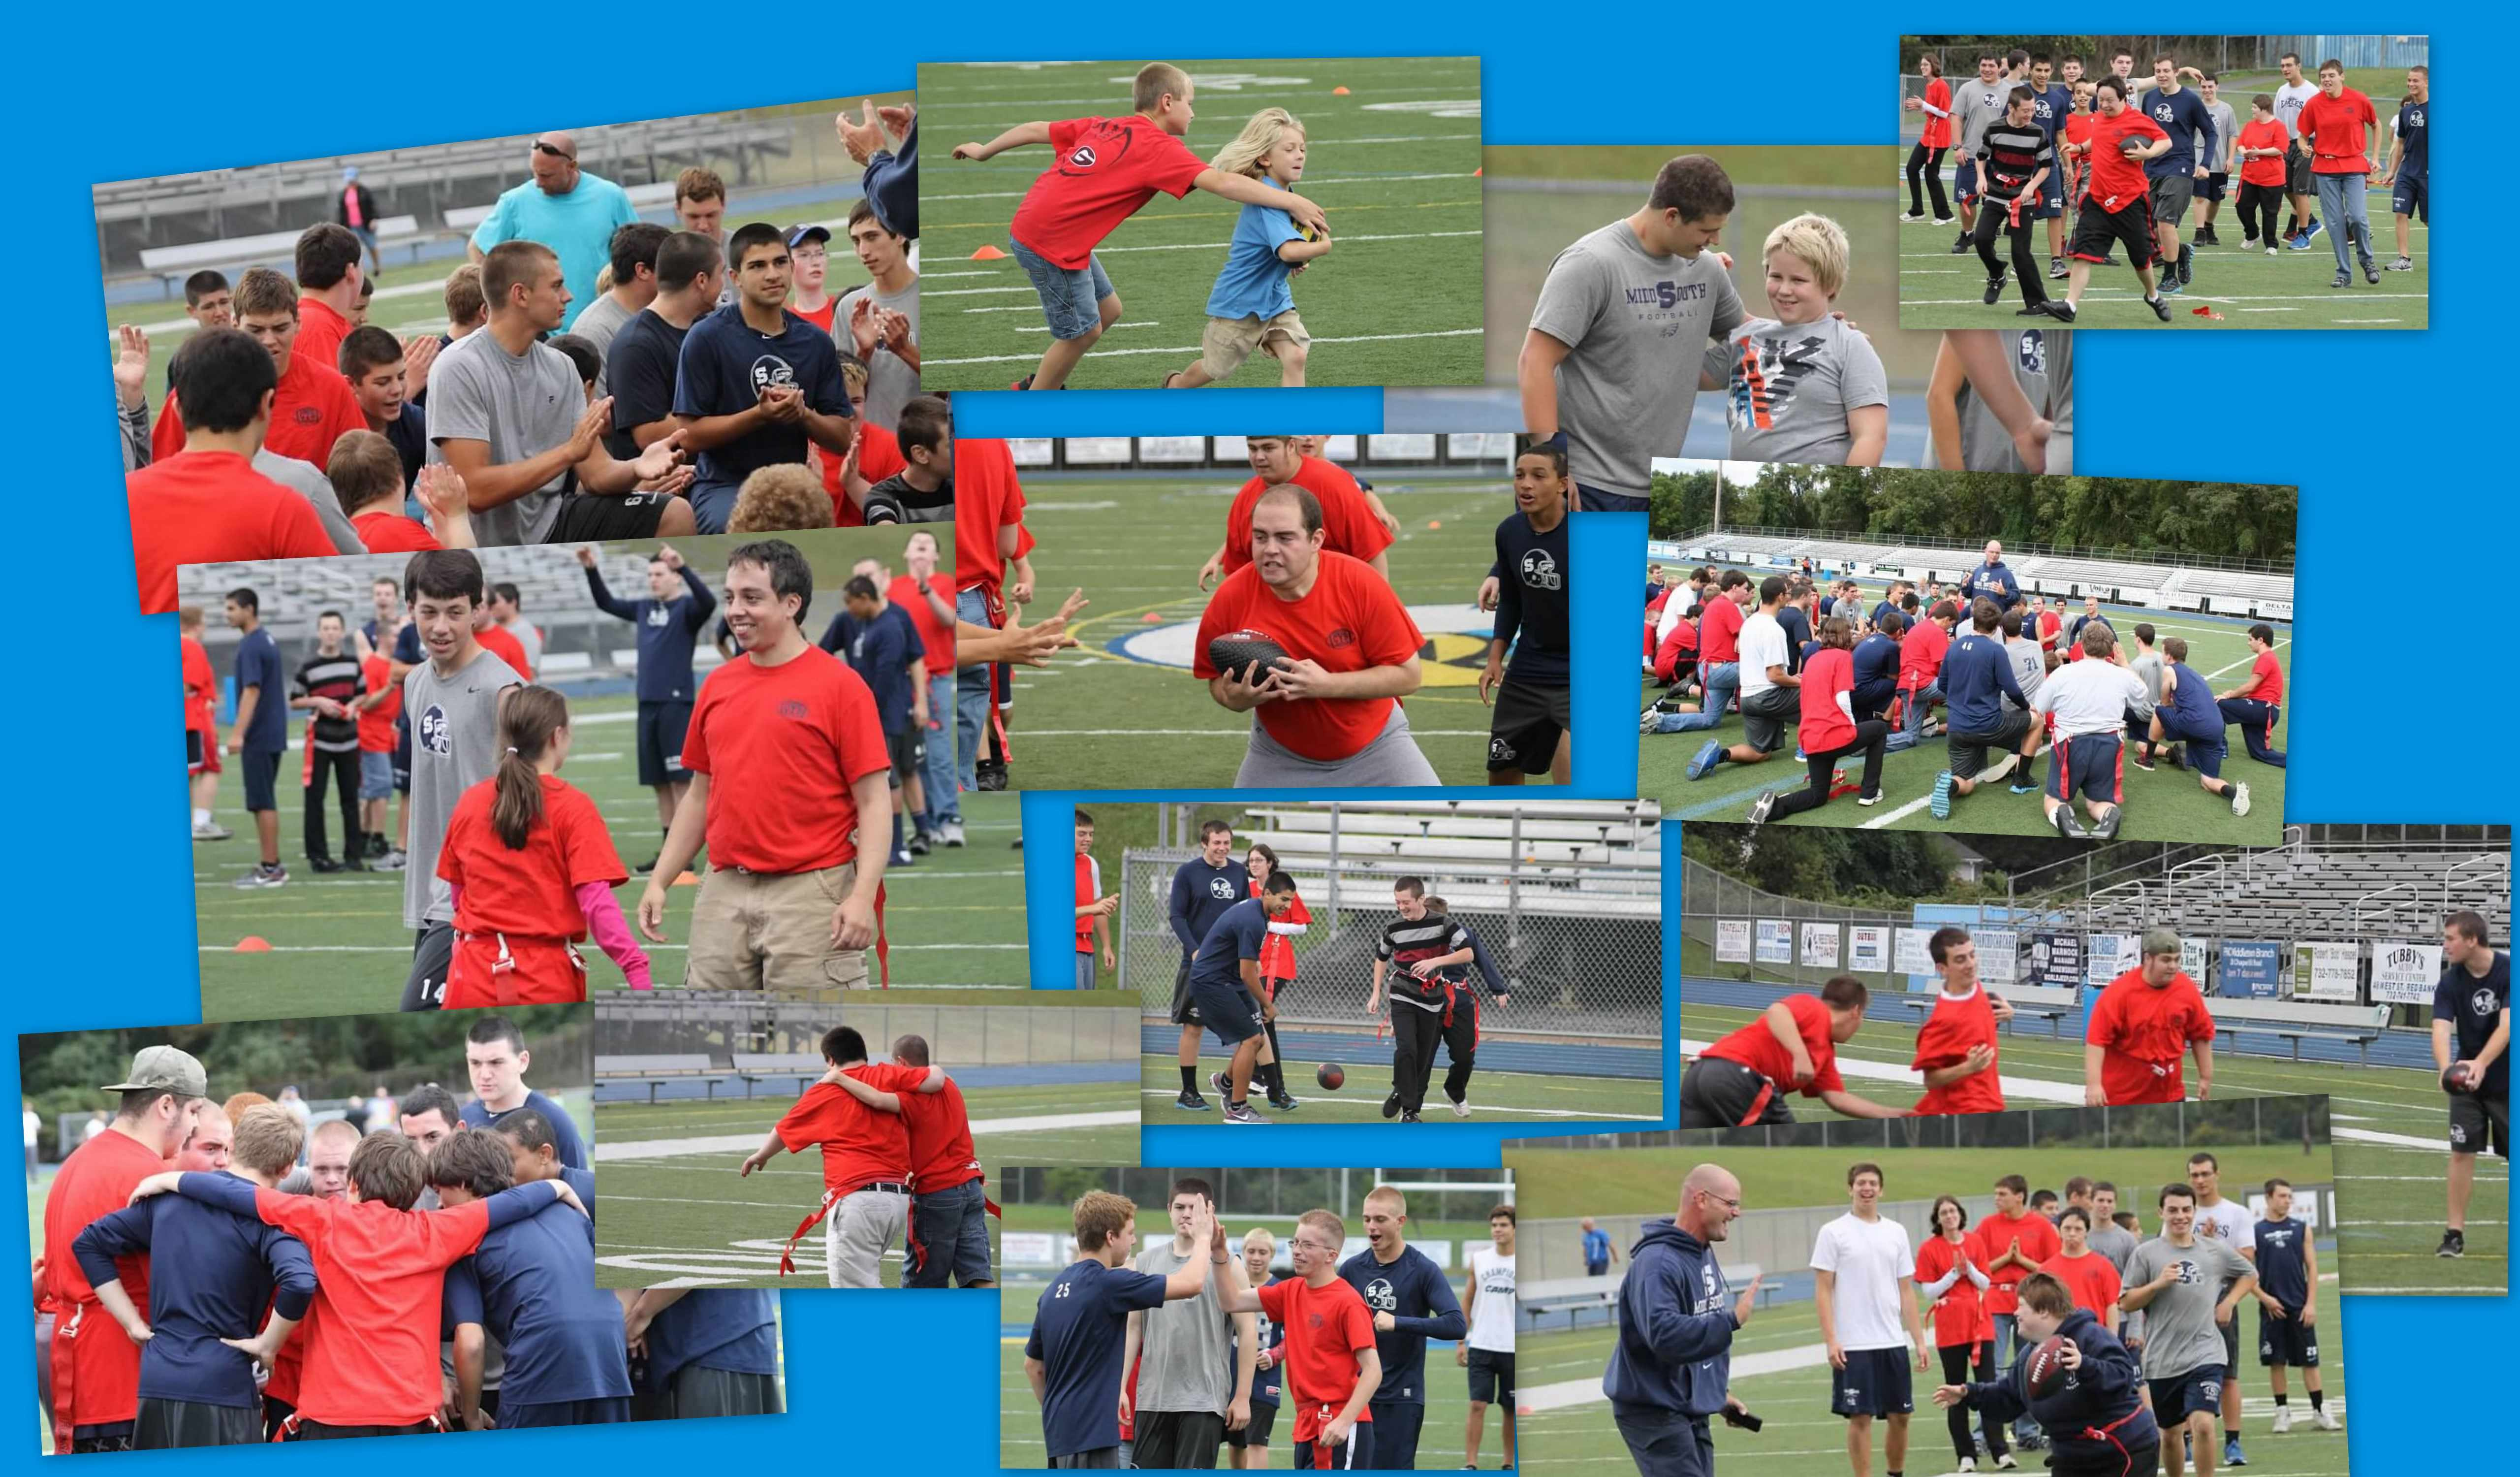 Flag Football collage